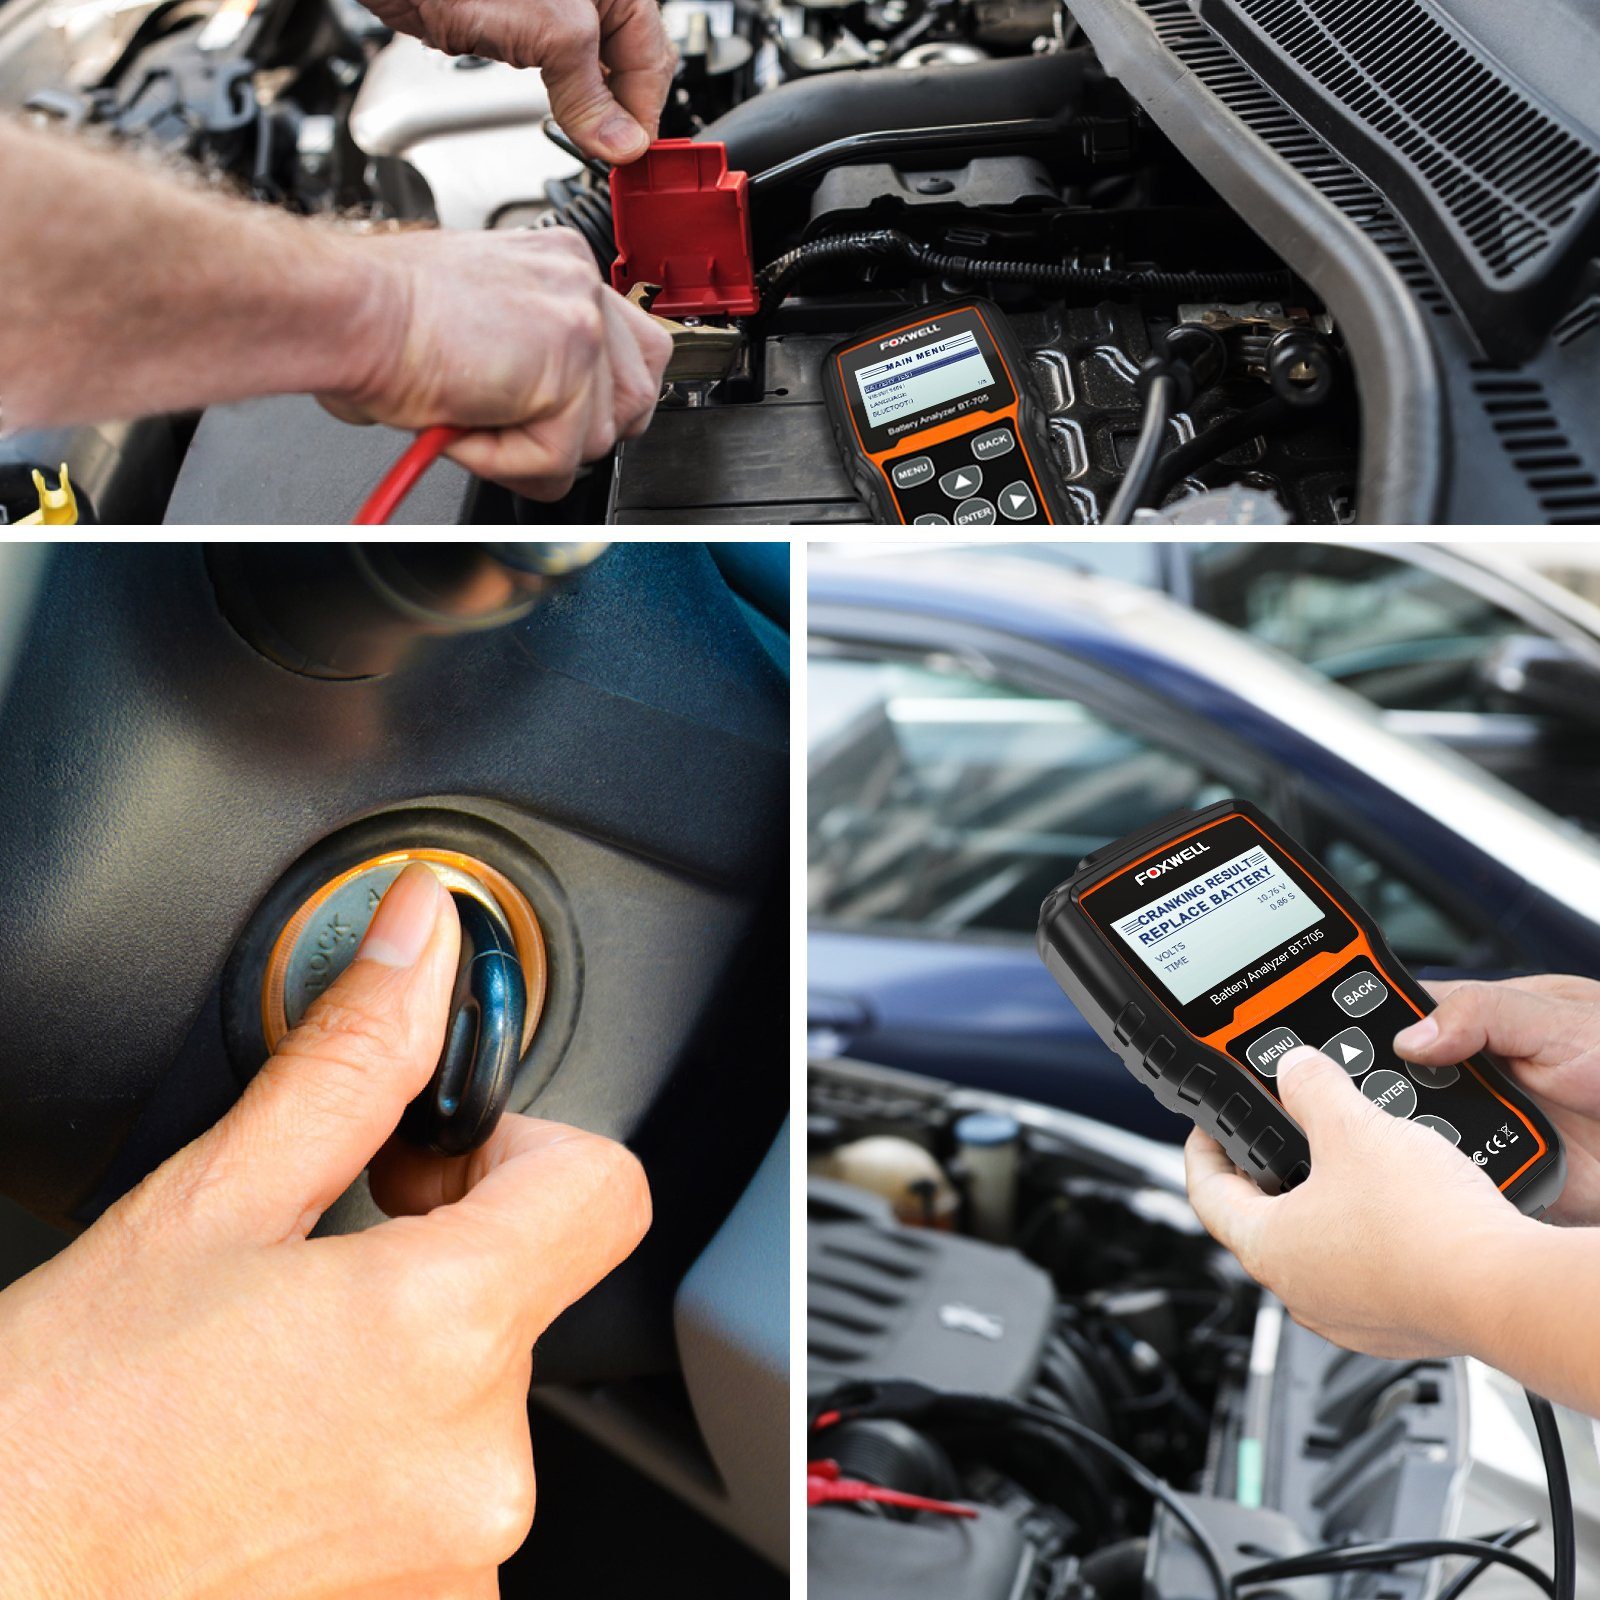 FOXWELL Battery Tester BT705 Automotive 100-2000 CCA Battery Load Tester 12V 24V Car Cranking and Charging System Test Tool Digital Battery Analyzer for Cars and Heavy Duty Trucks by FOXWELL (Image #5)